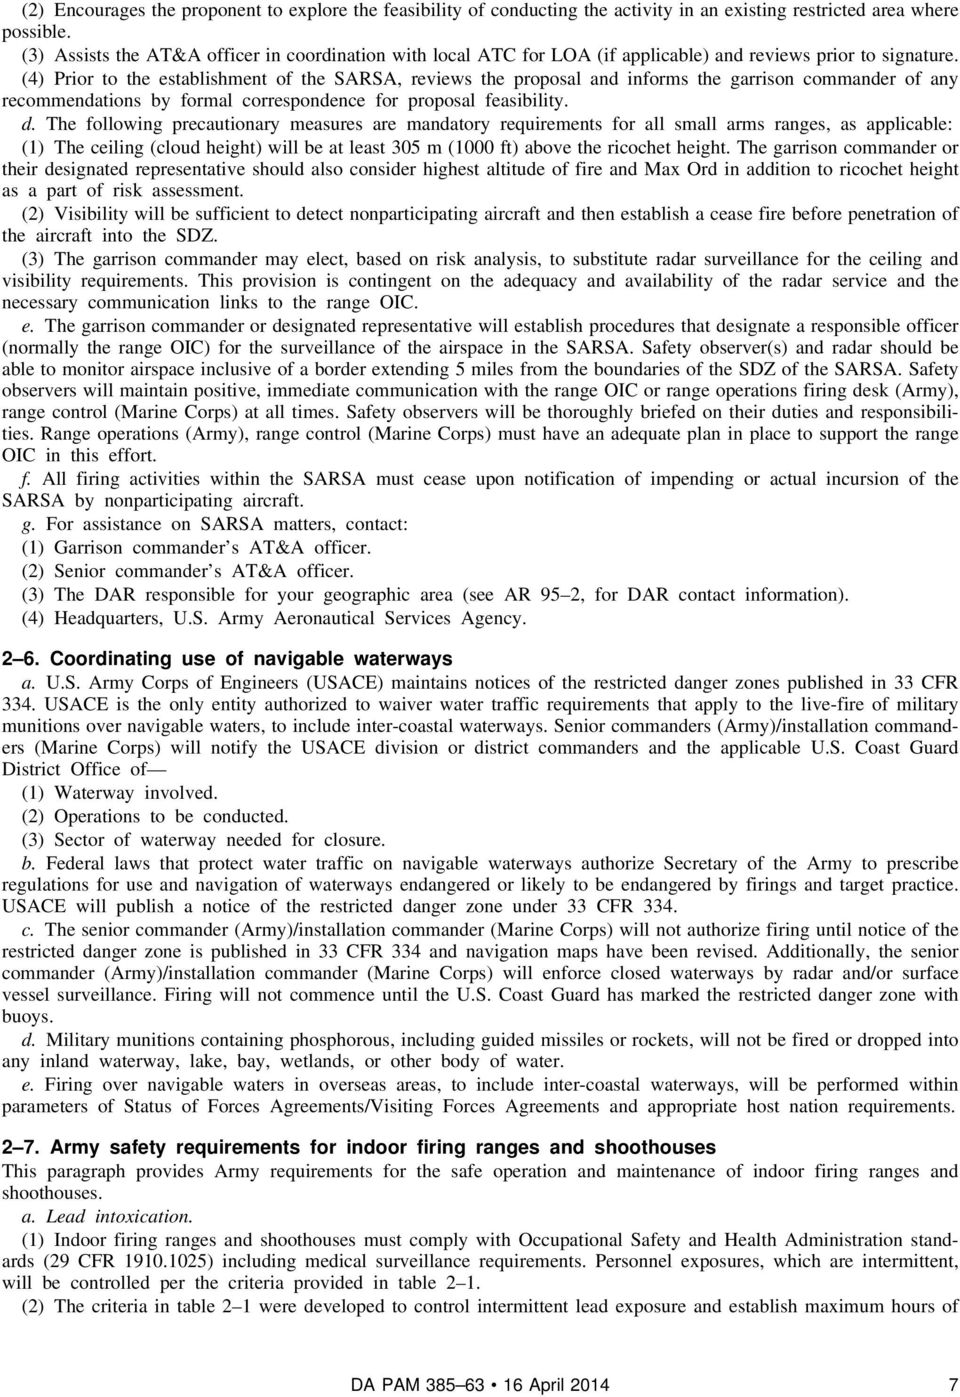 safety regulation within under rooms division Rules and regulations for boiler and pressure vessel inspection (rigl - 28-25) revised july 2011 ri department of labor & training division of occupational safety.